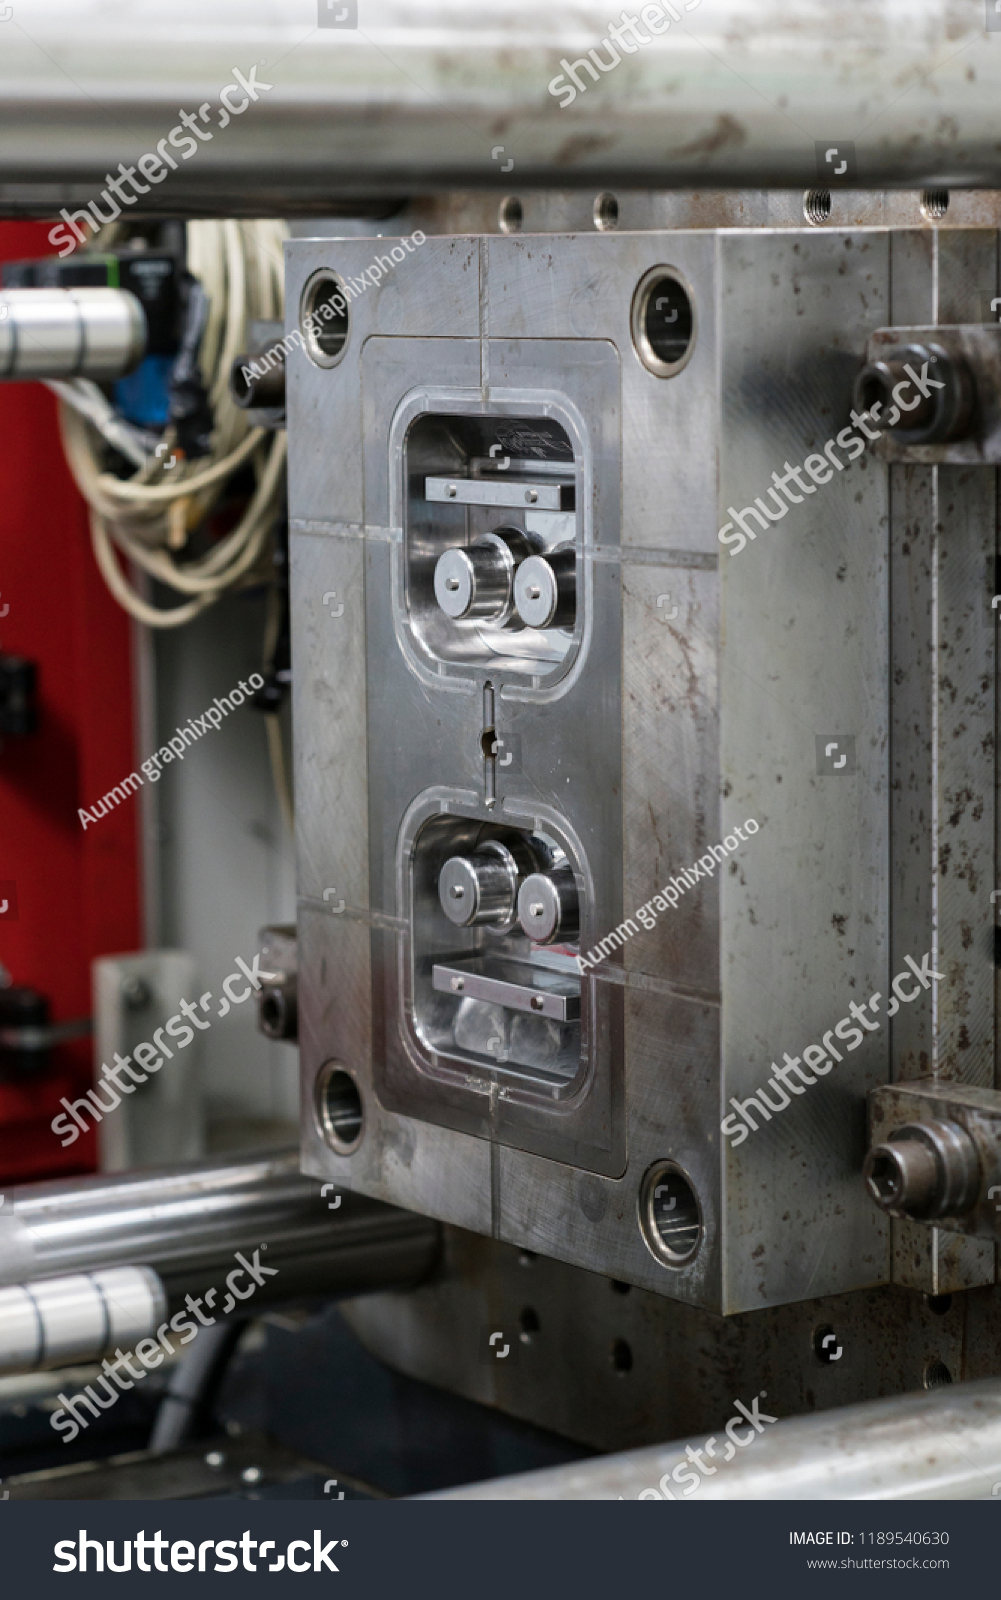 High Precision Plastic Injection Mold Small Stock Photo